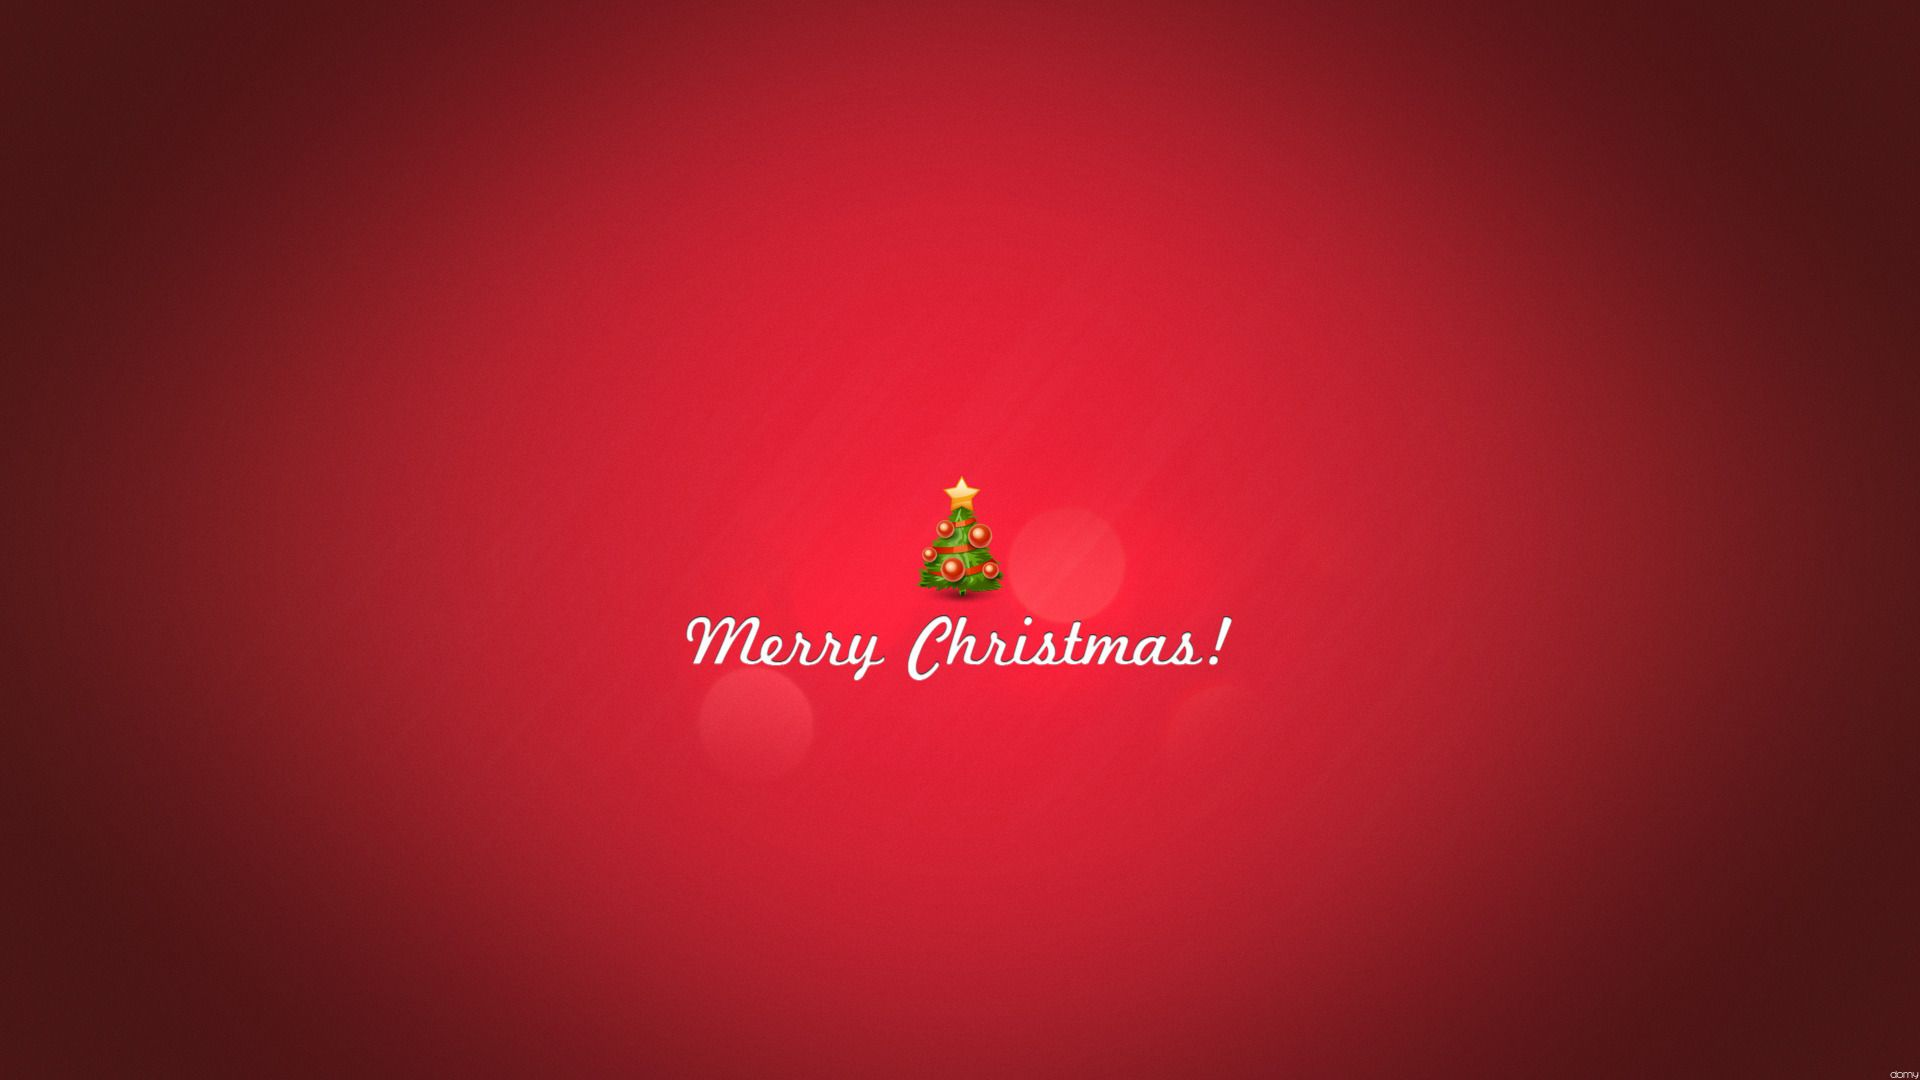 happy merry christmas wallpapers